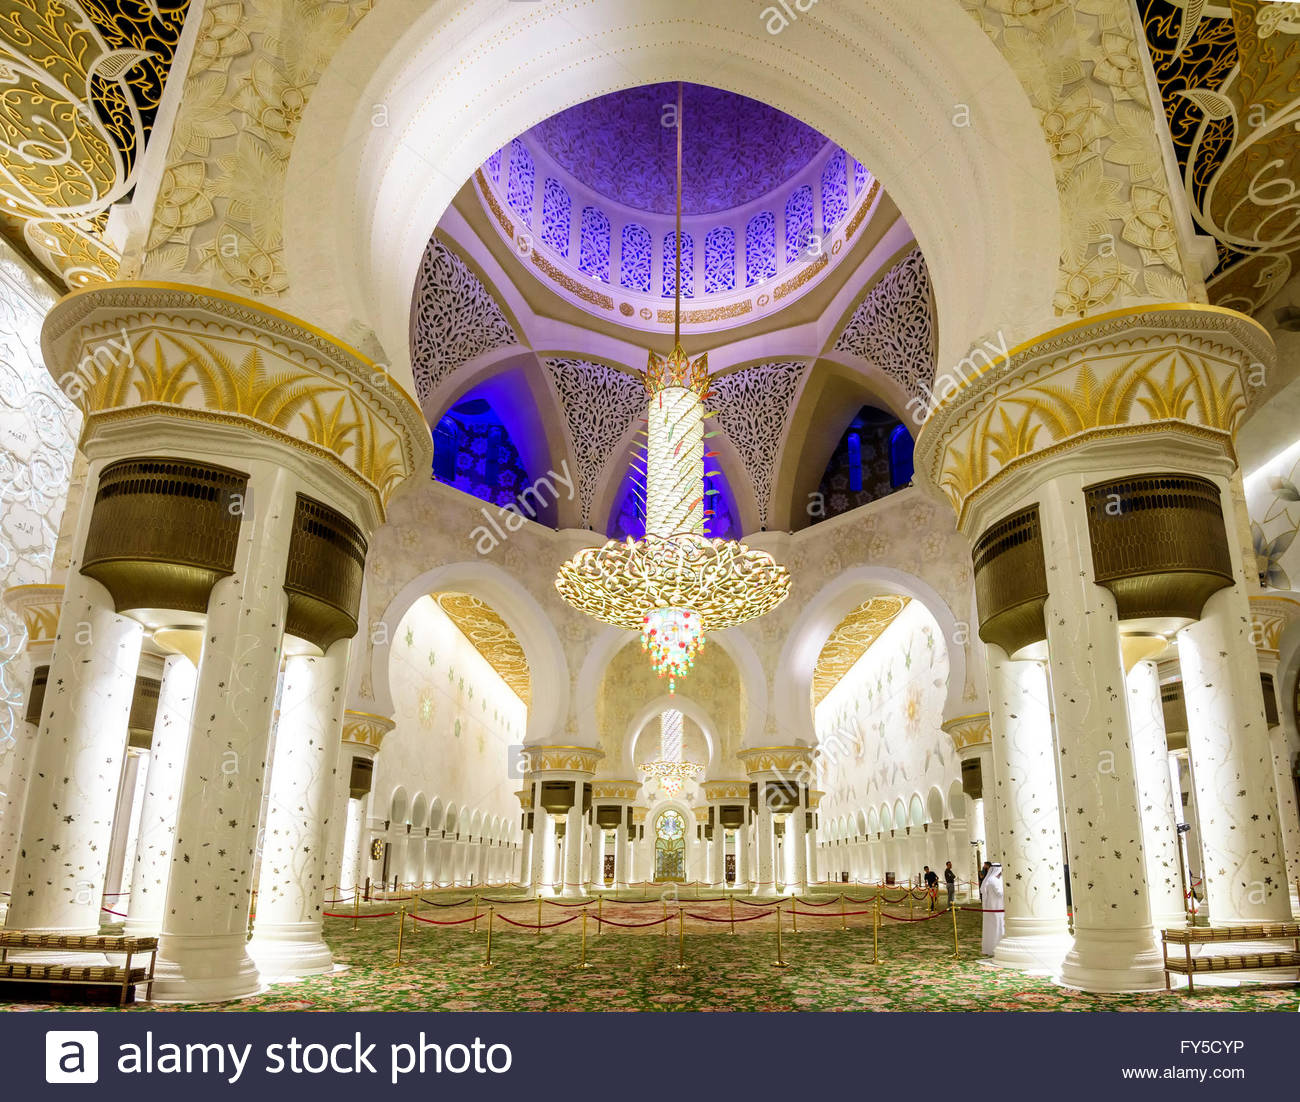 Inside Shiekh Zayed Grand Mosque - Stock Image